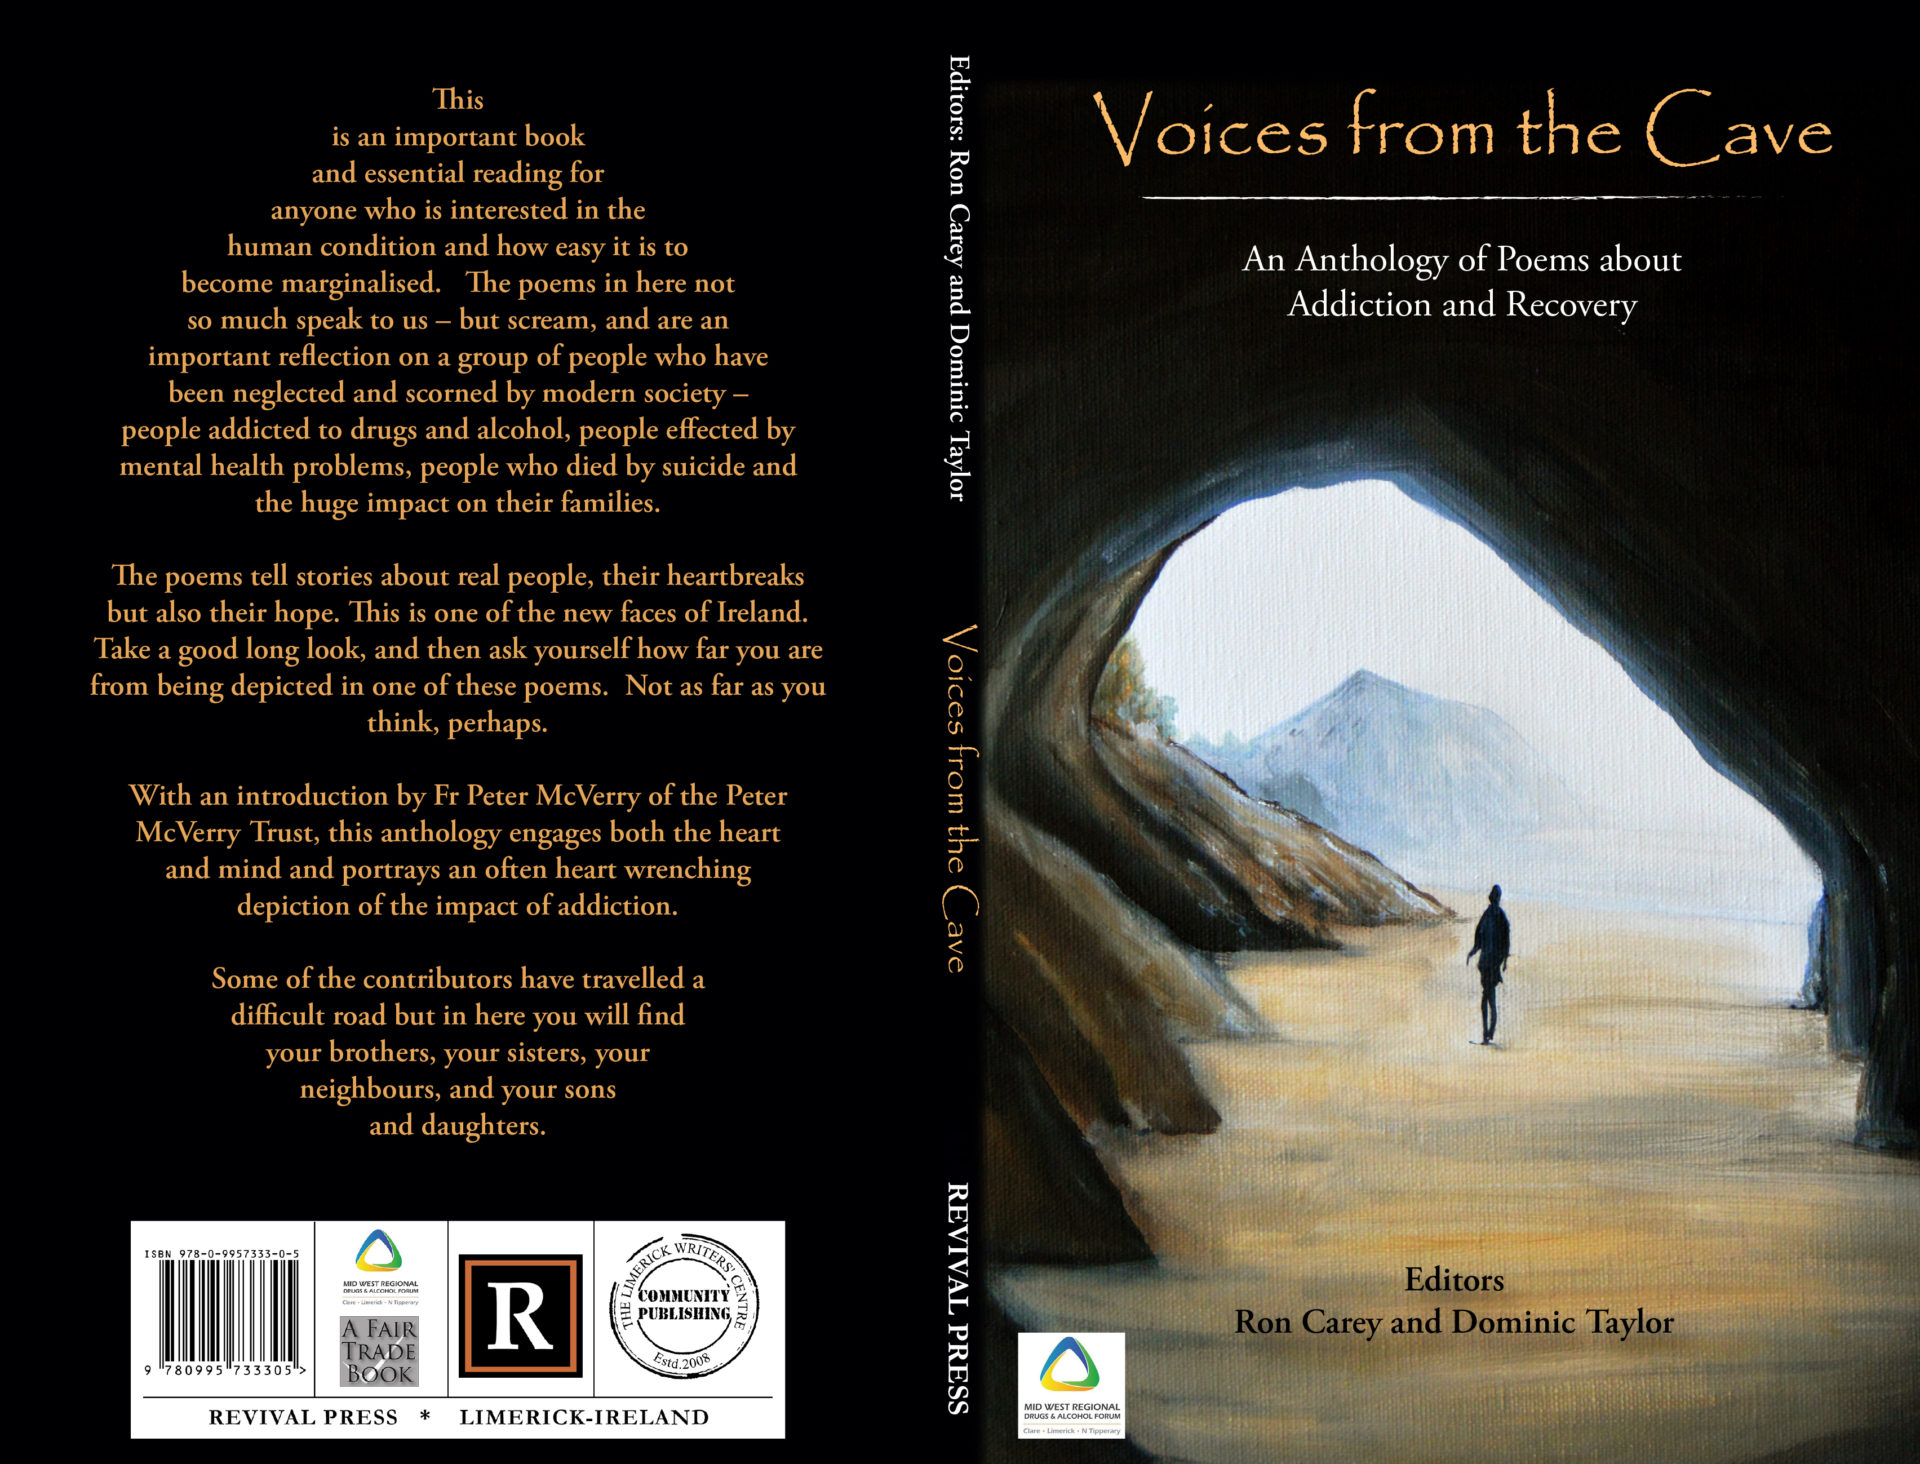 Voices from the Cave